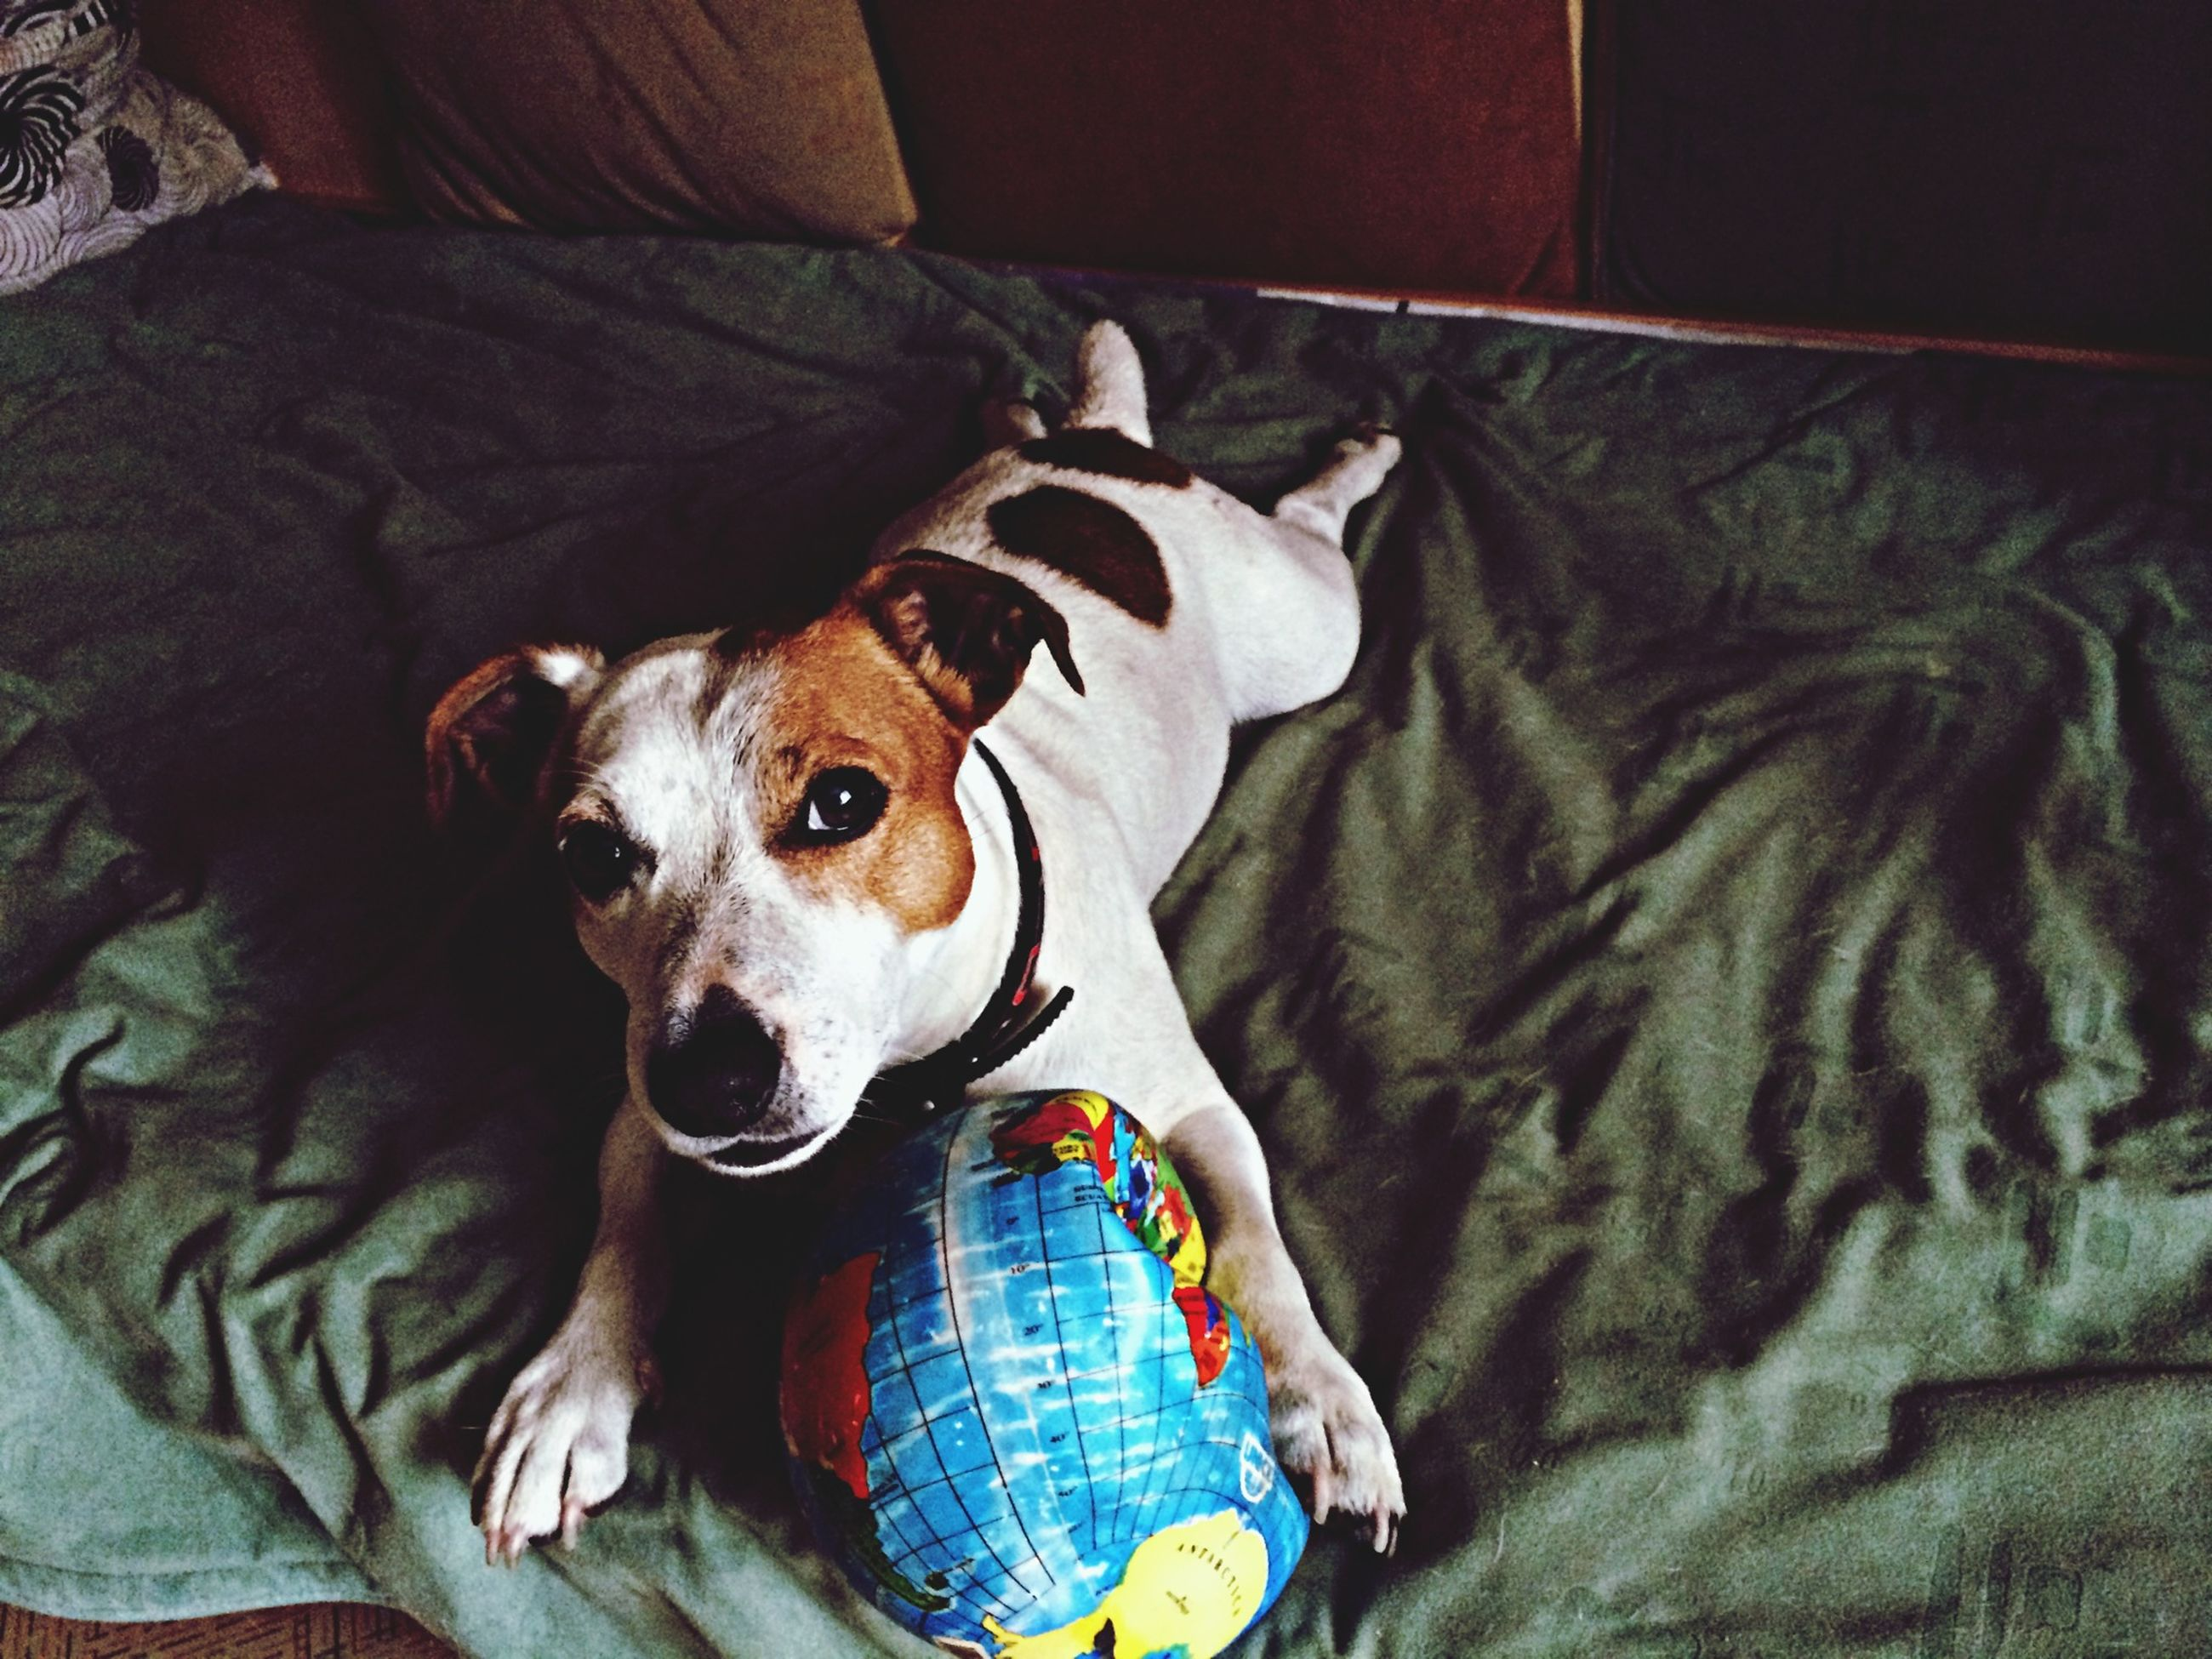 pets, domestic animals, dog, one animal, animal themes, mammal, portrait, looking at camera, relaxation, indoors, animal head, resting, sitting, sofa, lying down, bed, pet collar, high angle view, no people, front view